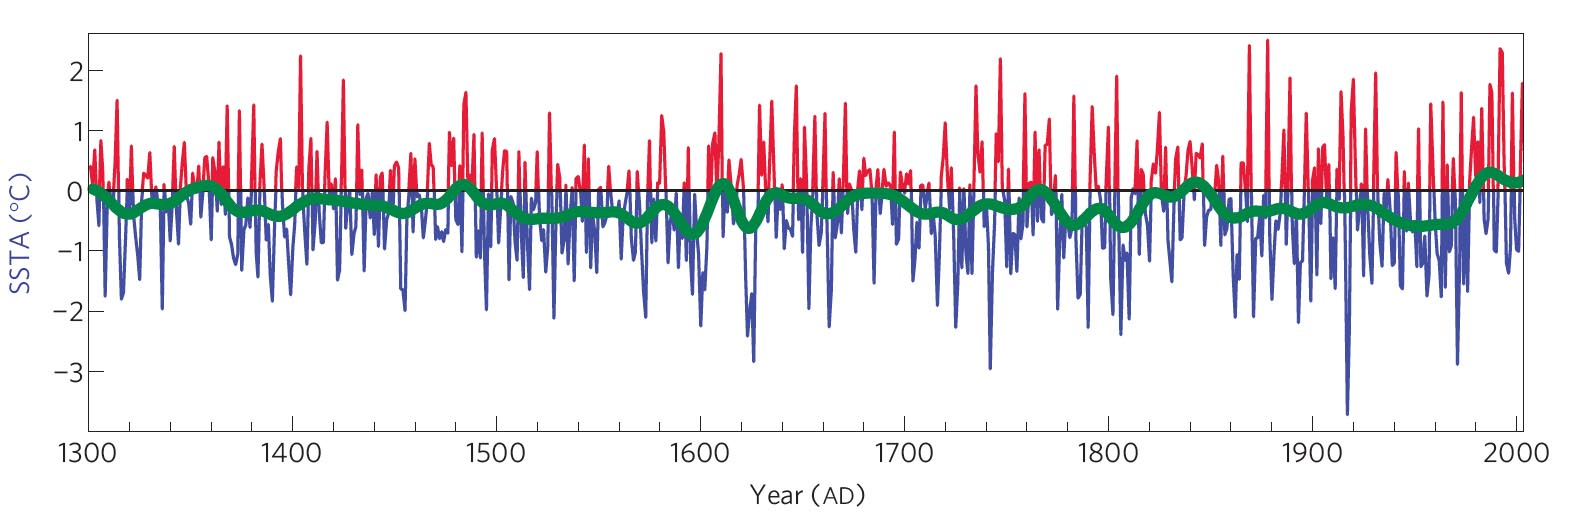 el nino essay question A: yes, it is an unequivocal fact that the earth's average temperature continues to rise, despite some natural year-to-year fluctuationslearn more .